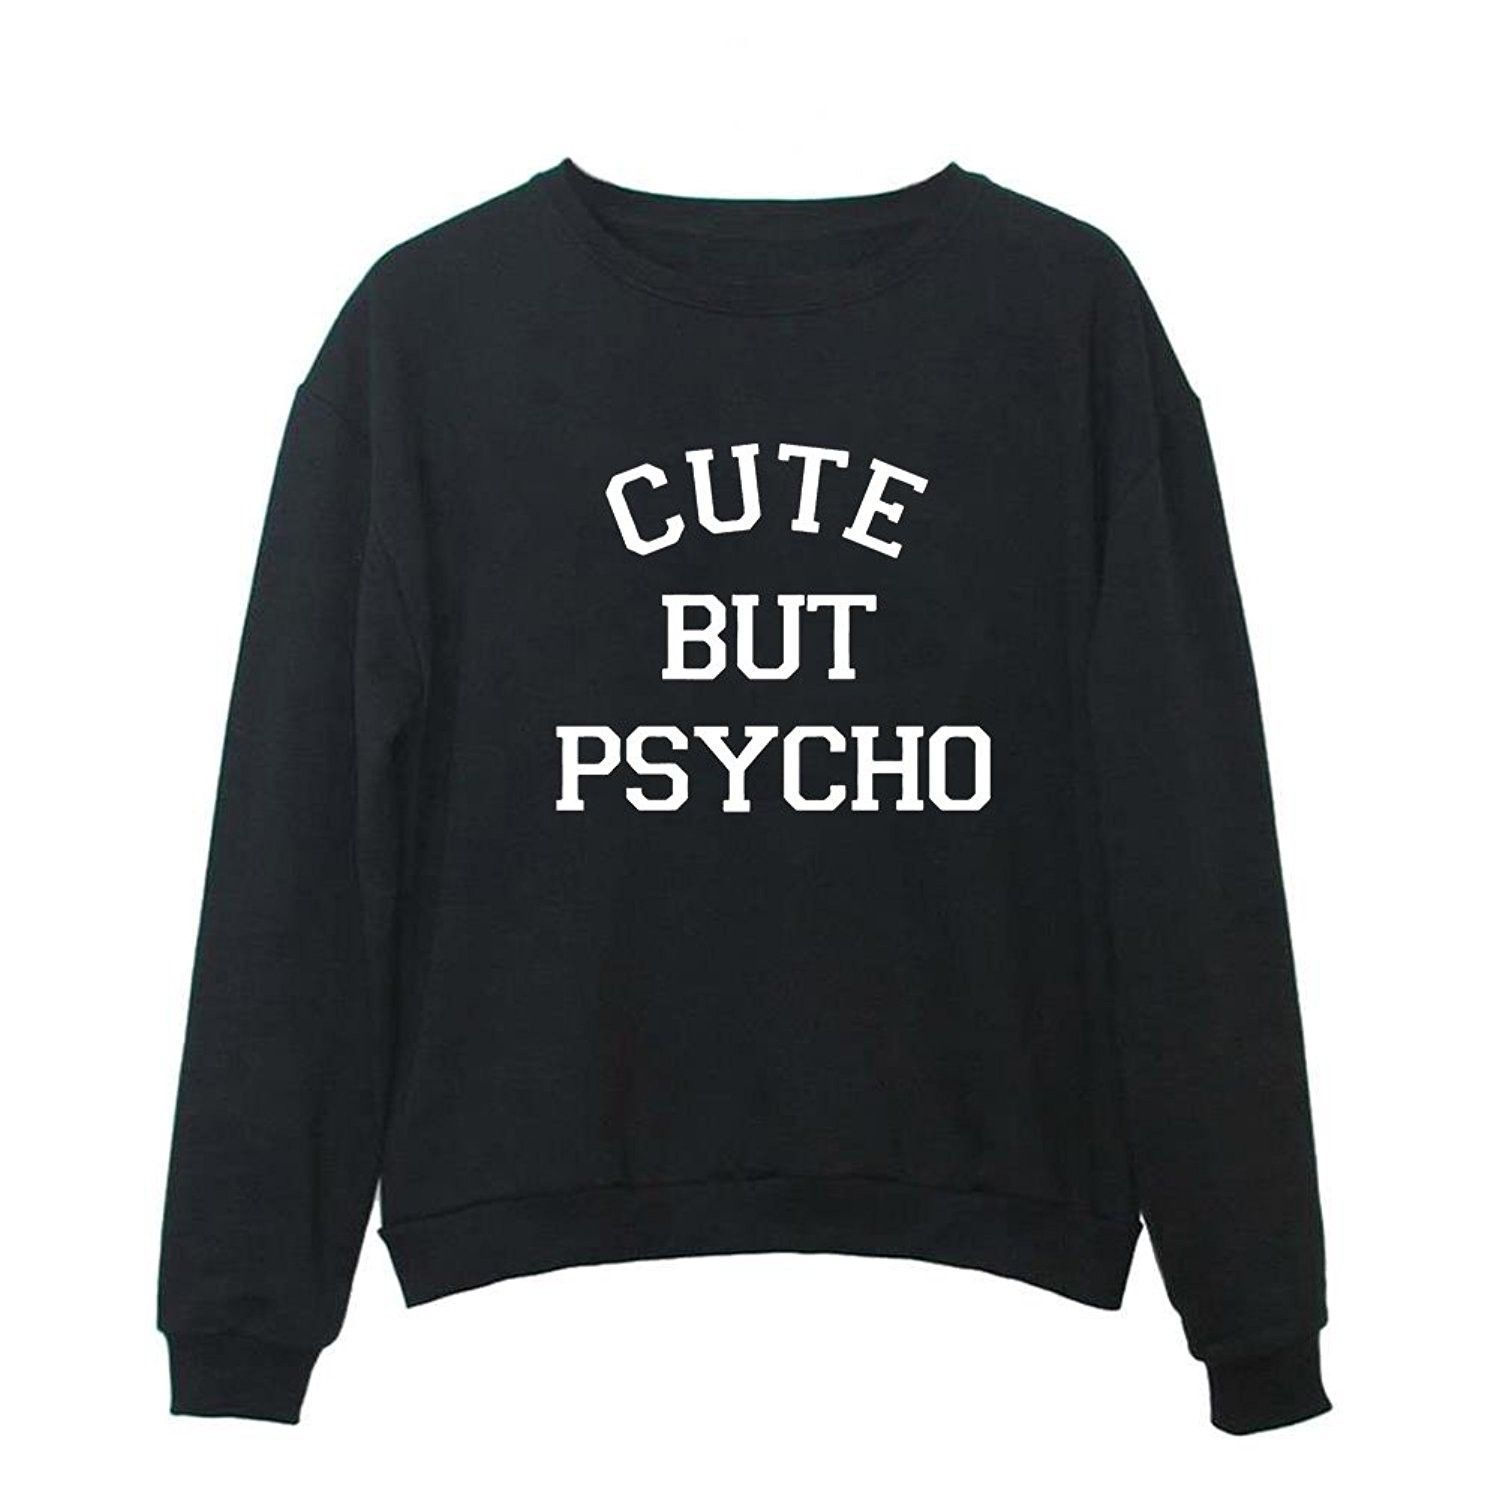 Women's Clothing, Hoodies & Sweatshirts, Women Graphic Cute Sweaters Funny Pullover Teen Girls Sweatshirts - Black - CJ187CE0WY9         #fashion #Hoodies #Sweatshirts #women #outfits #clothing